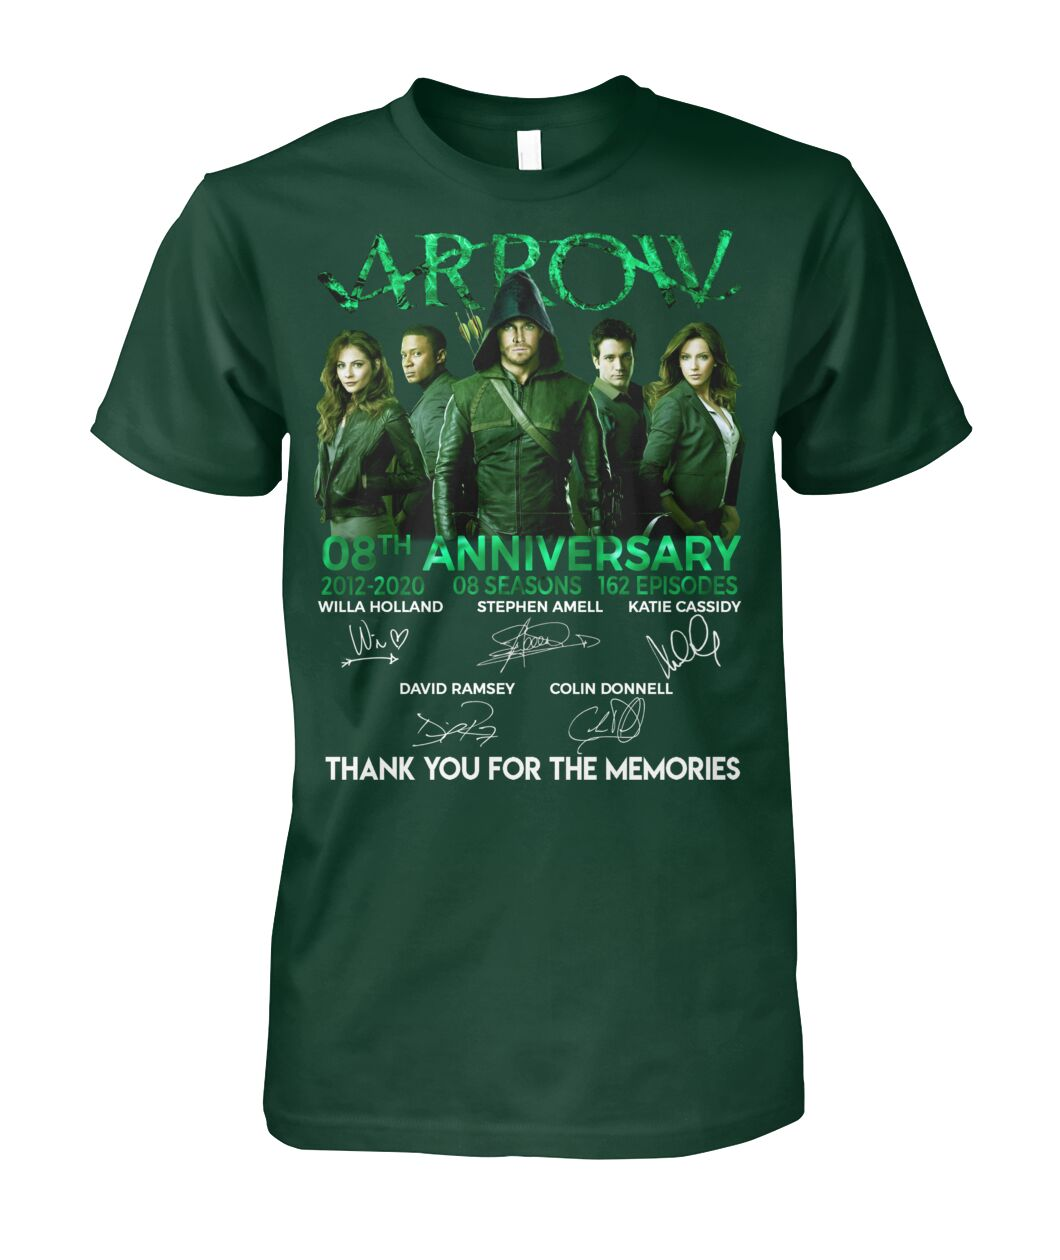 Arrow 8th anniversary thank you for the memories shirt